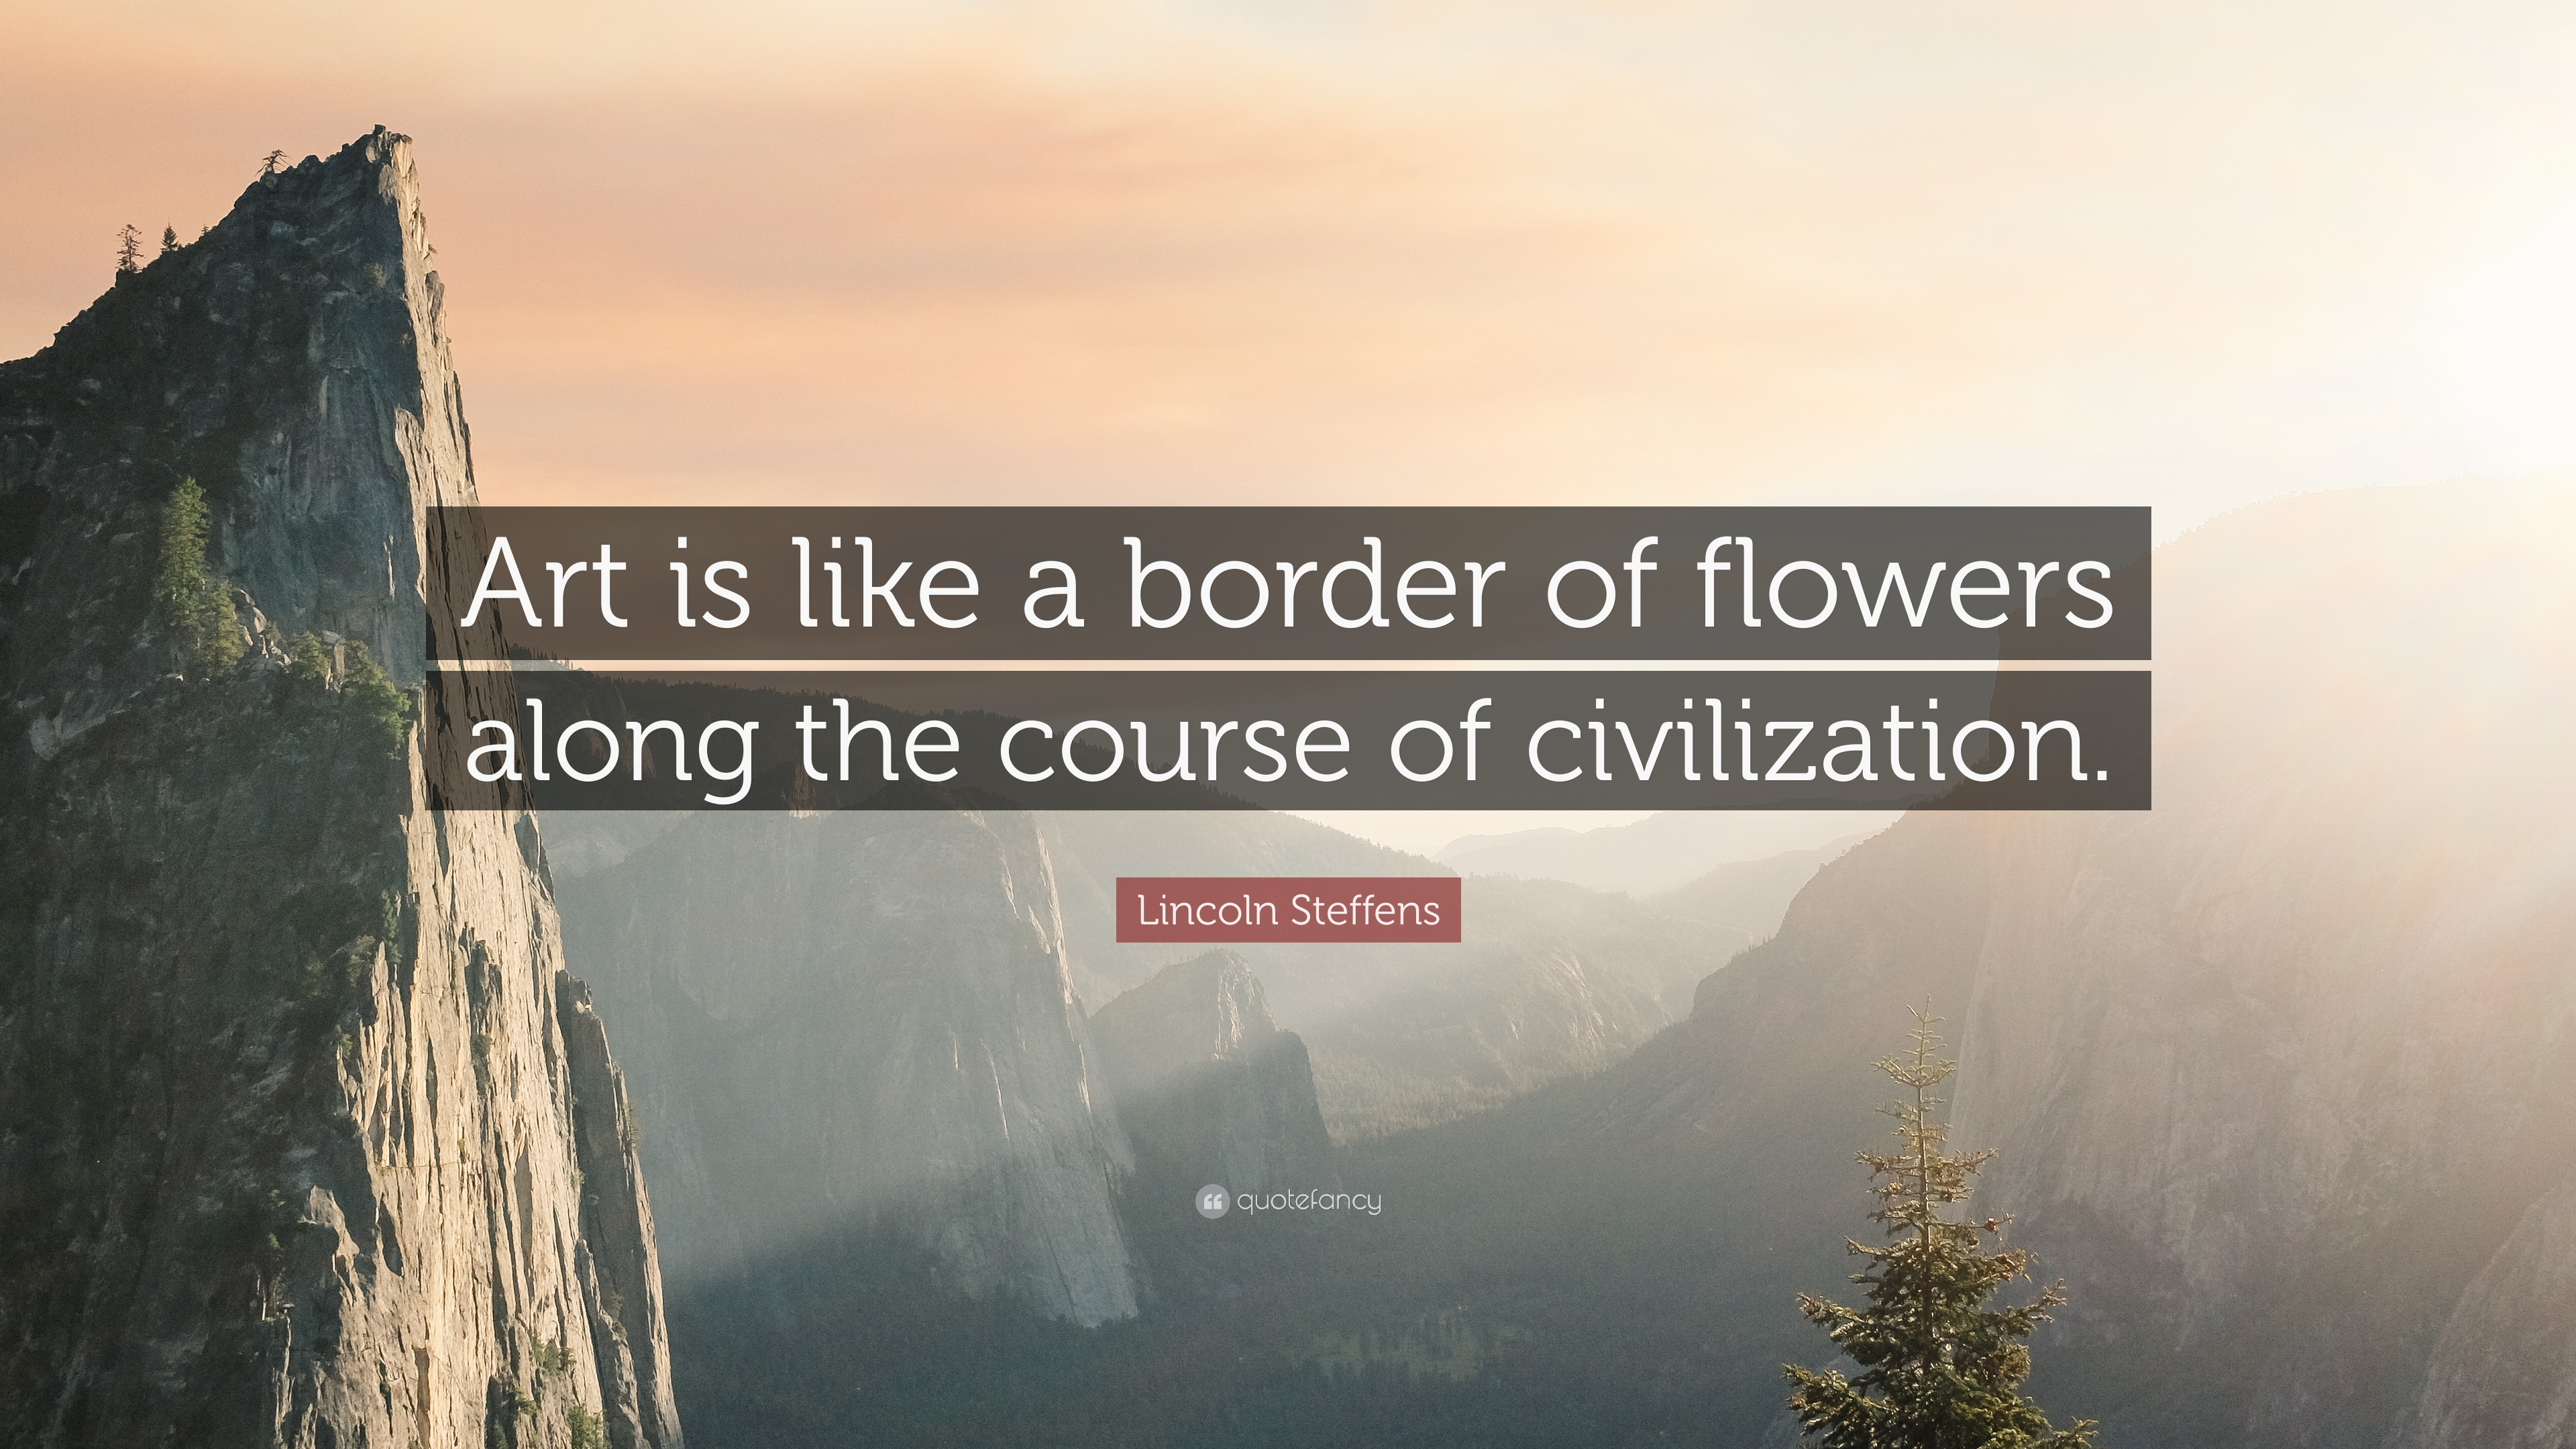 Lincoln Steffens Quote Art Is Like A Border Of Flowers Along The Course Of Civilization 7 Wallpapers Quotefancy